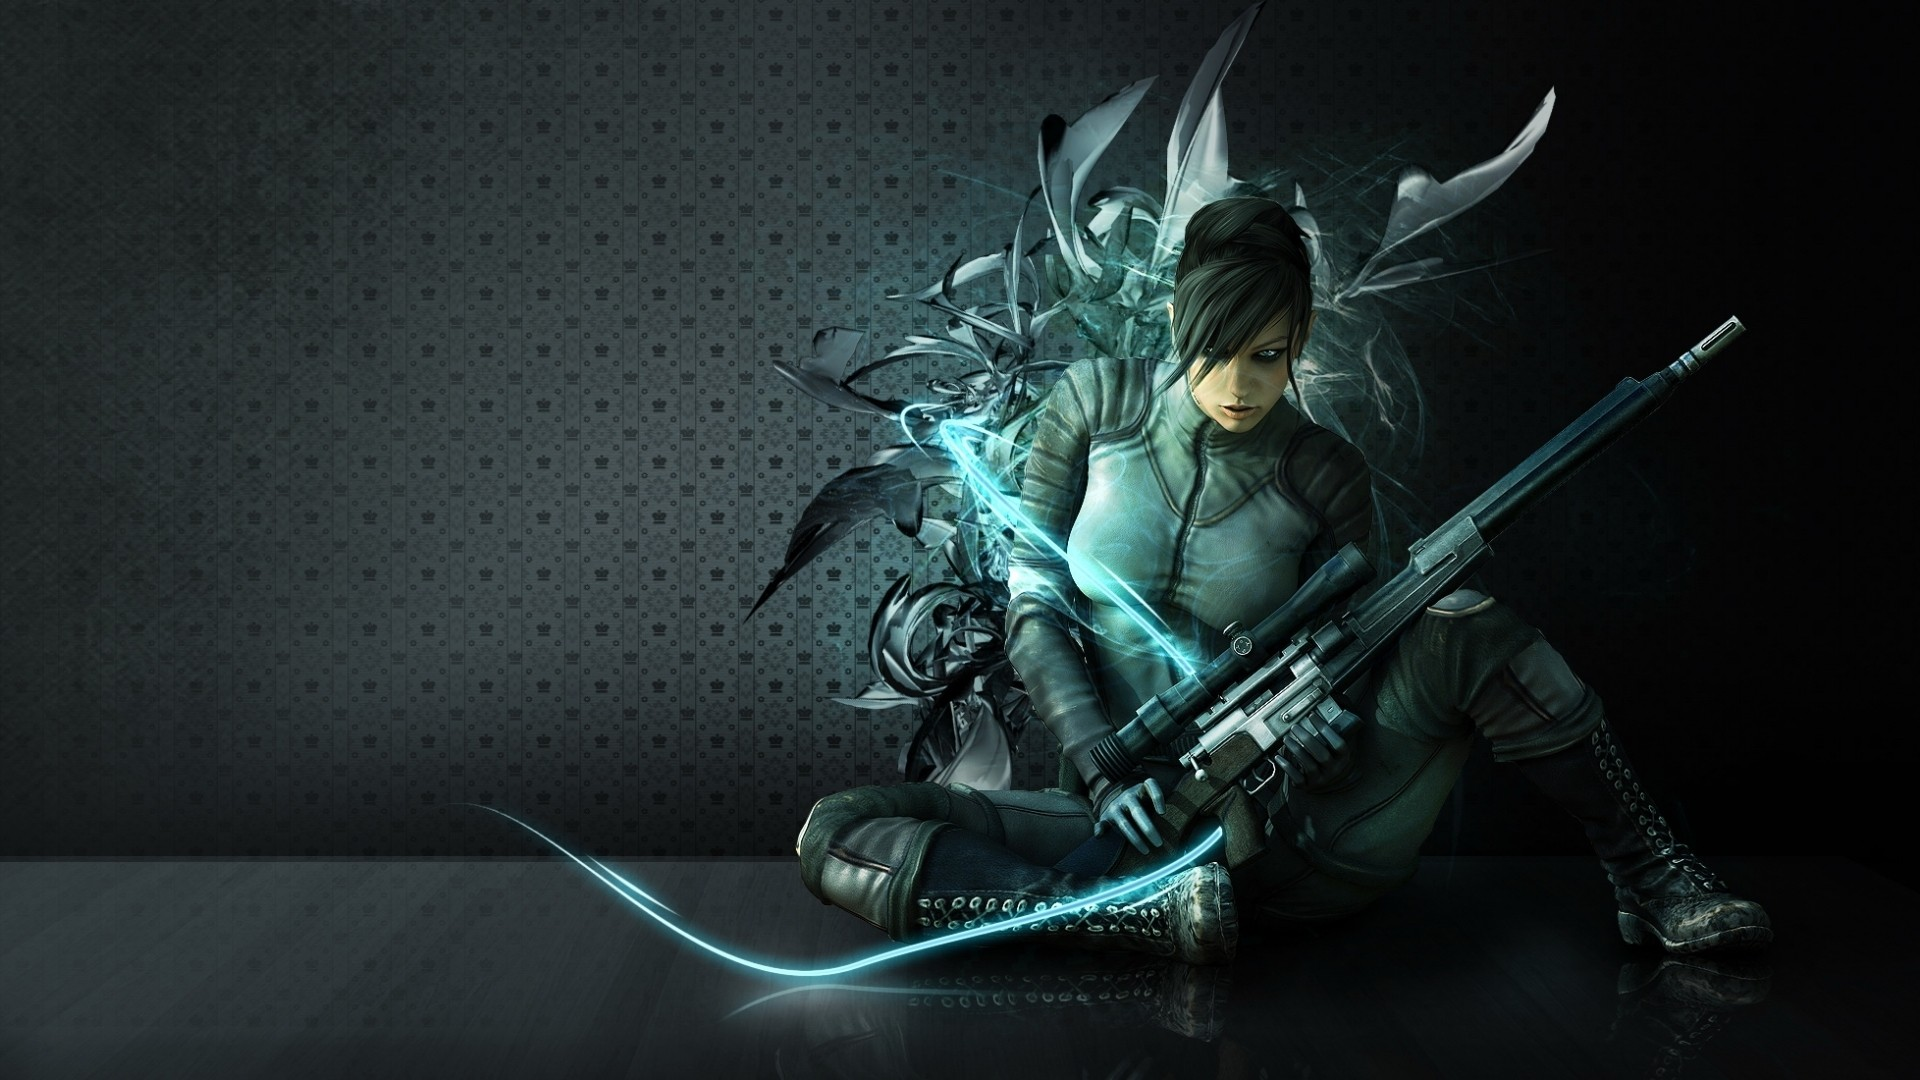 Abstract Sniper Wallpapers Abstract Sniper HD Wallpapers 1920x1080